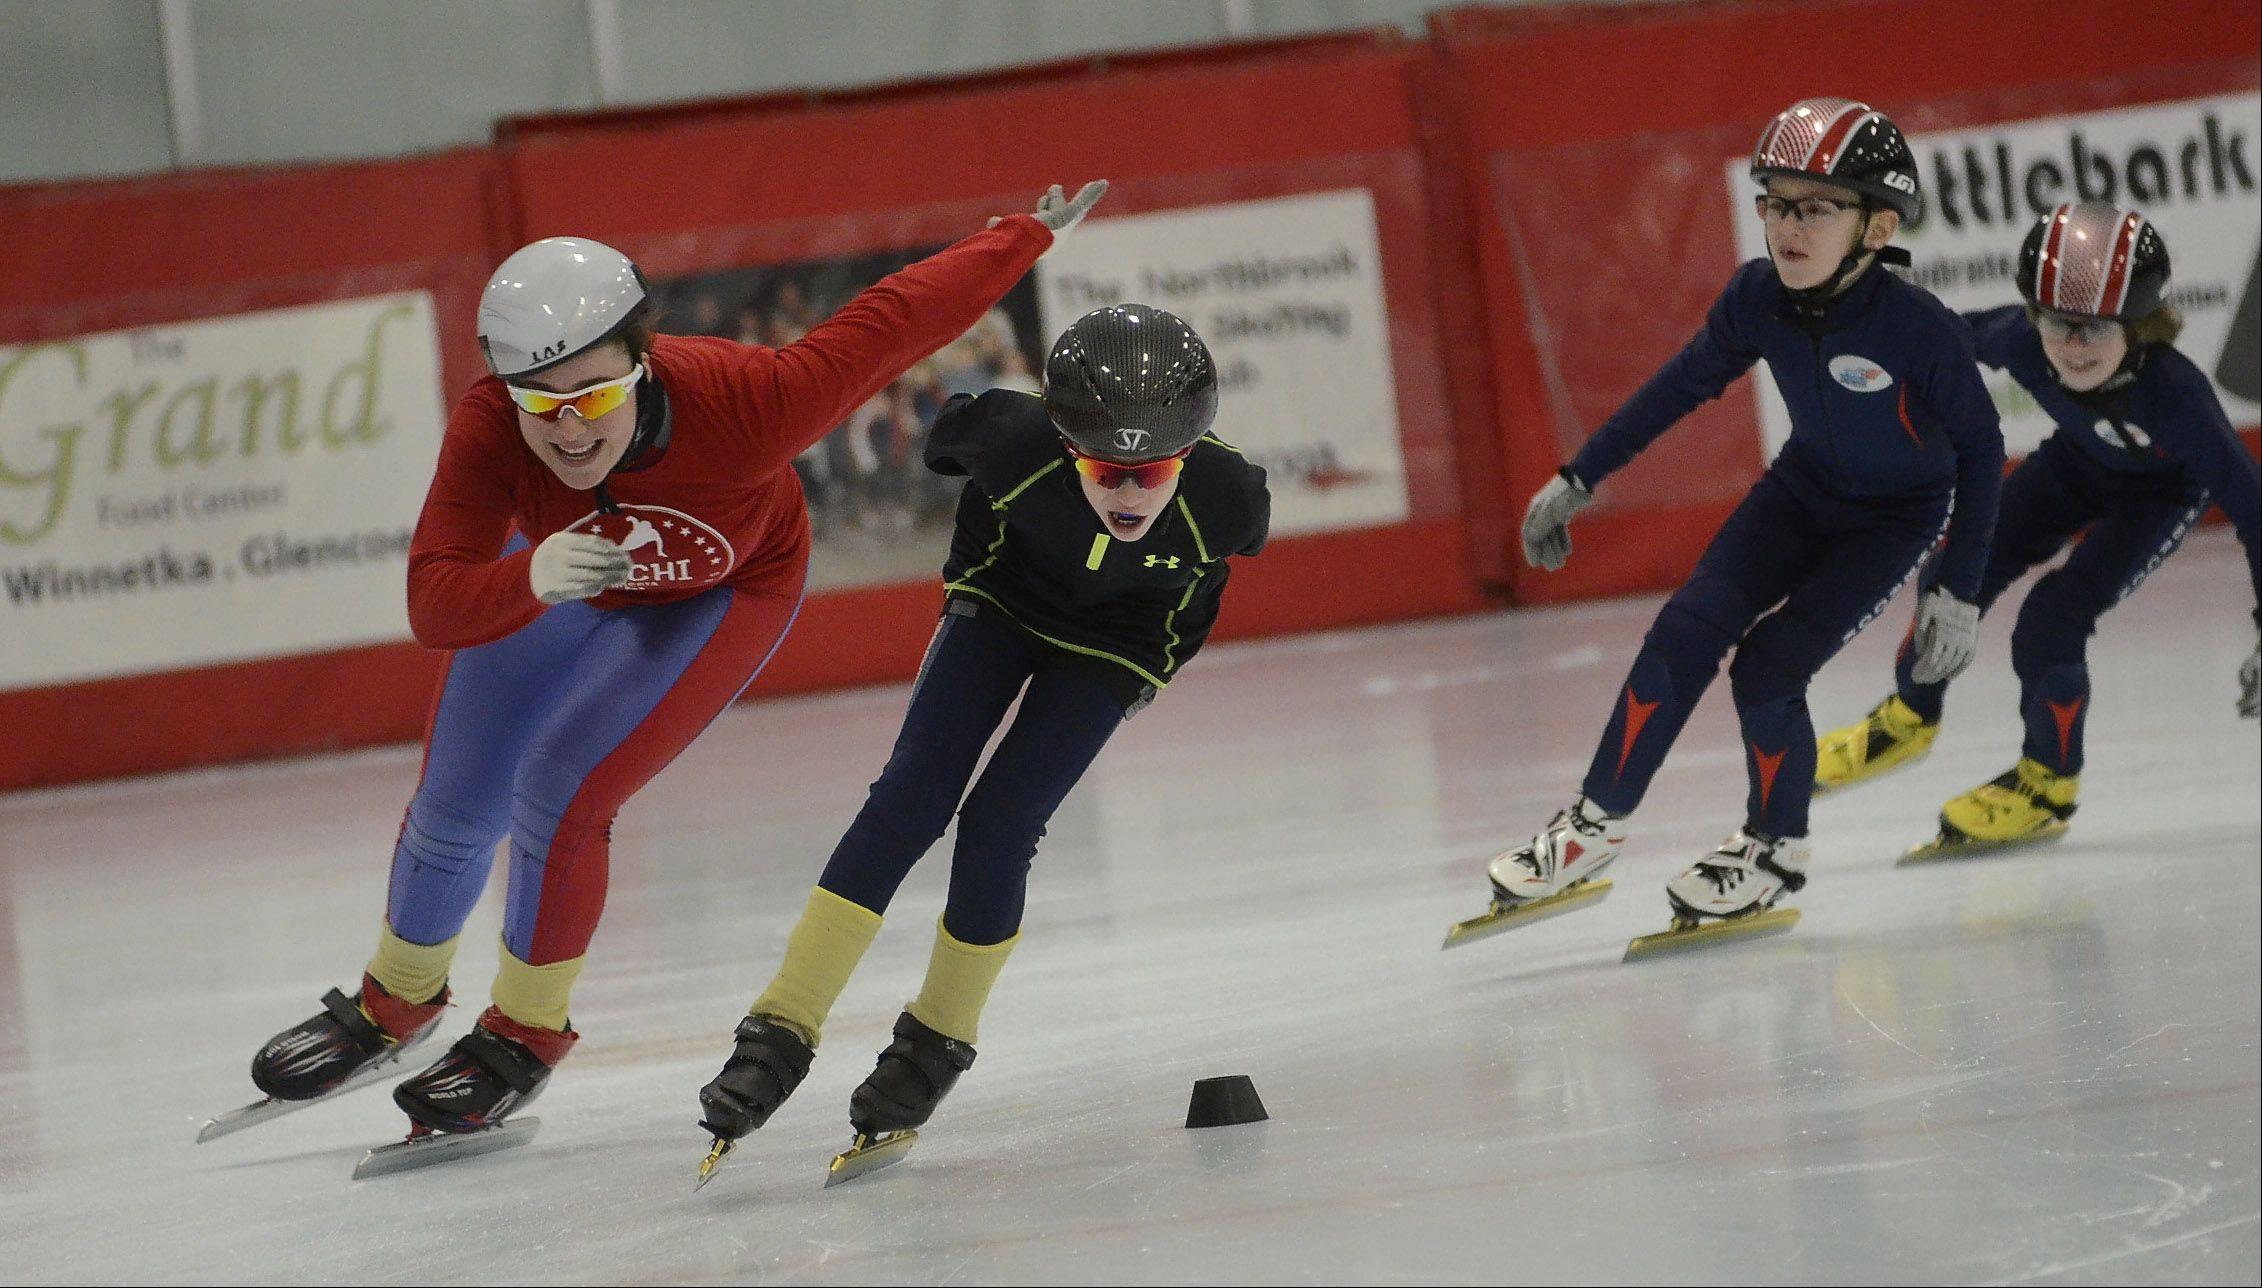 Simone Grach, left, and Carl Tatelli spin out of a turn while practicing with the Northbrook Speed Skating Club last week at the Northbrook Sports Center.